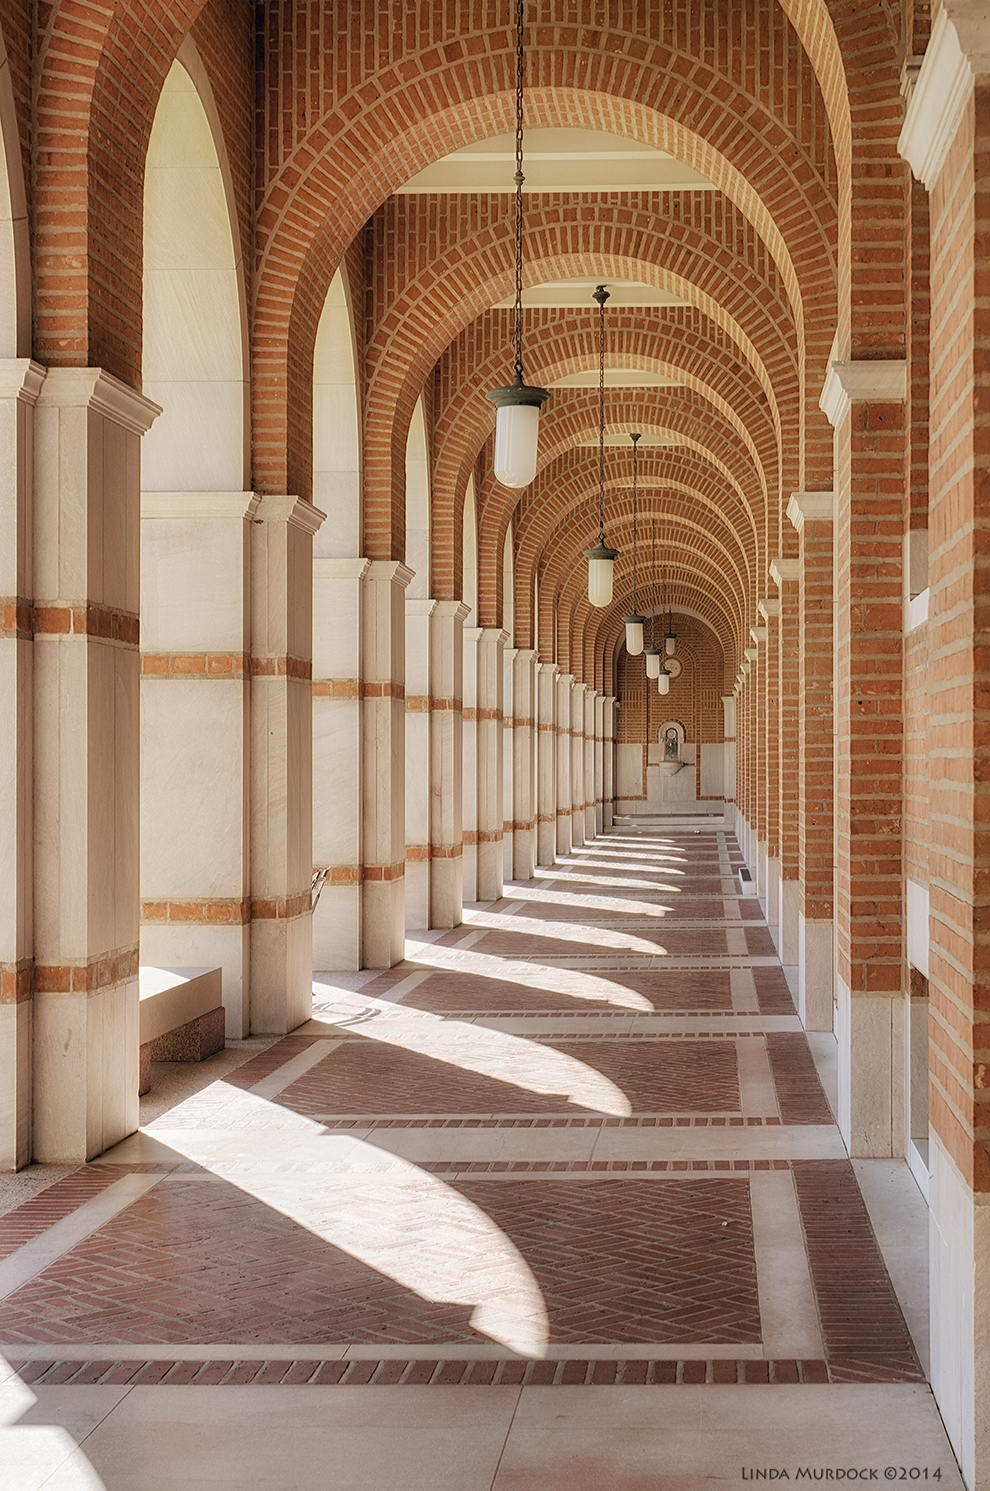 Stunning brick work. Patterns and shapes and light and shadows... Sony A77 II with 16-50mm DT  f/5.6 ISO 200 HDR